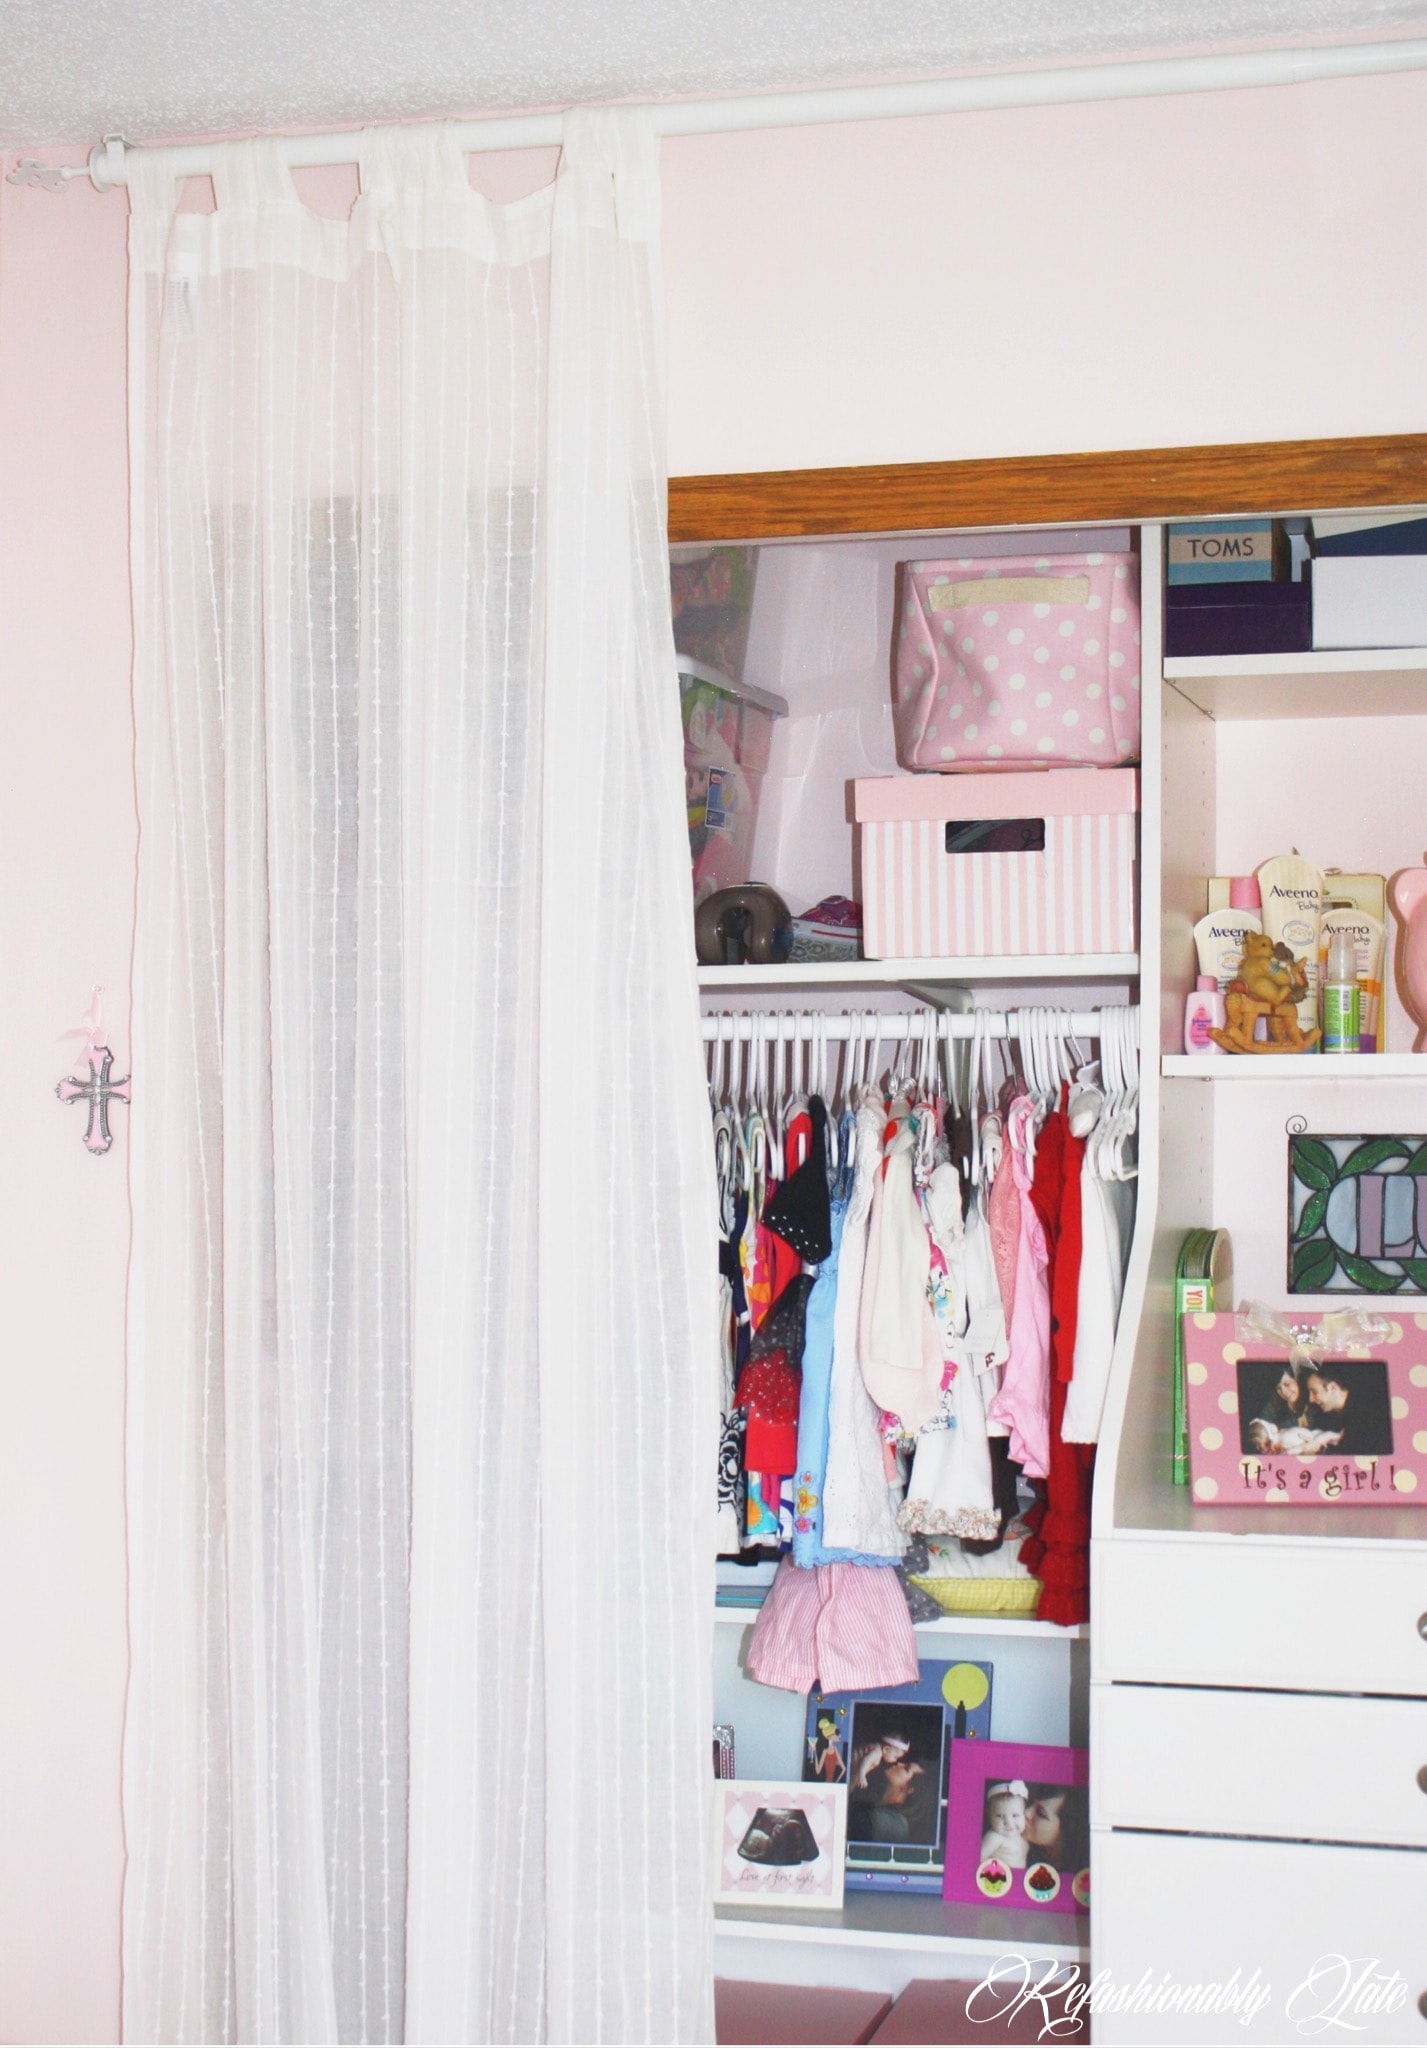 One Room Challenge Lucy's Room Week 1 - www.refashionablylate.com